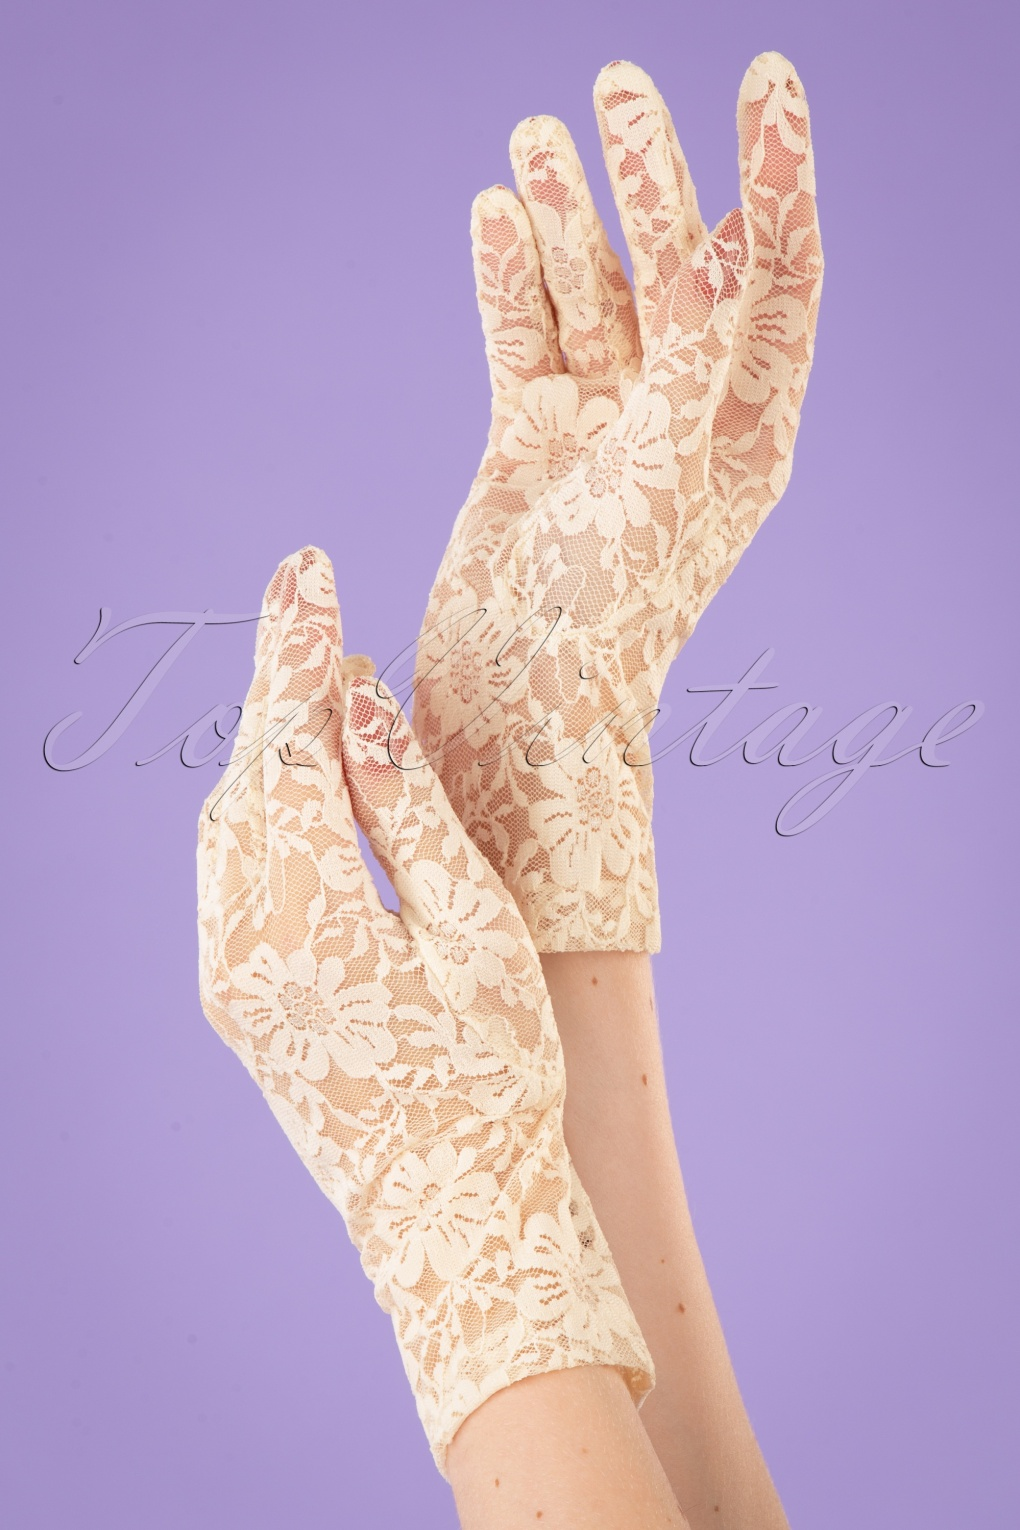 Vintage Style Gloves- Long, Wrist, Evening, Day, Leather, Lace 50s Lady Mary Lace Gloves in Capucine Cream £22.57 AT vintagedancer.com